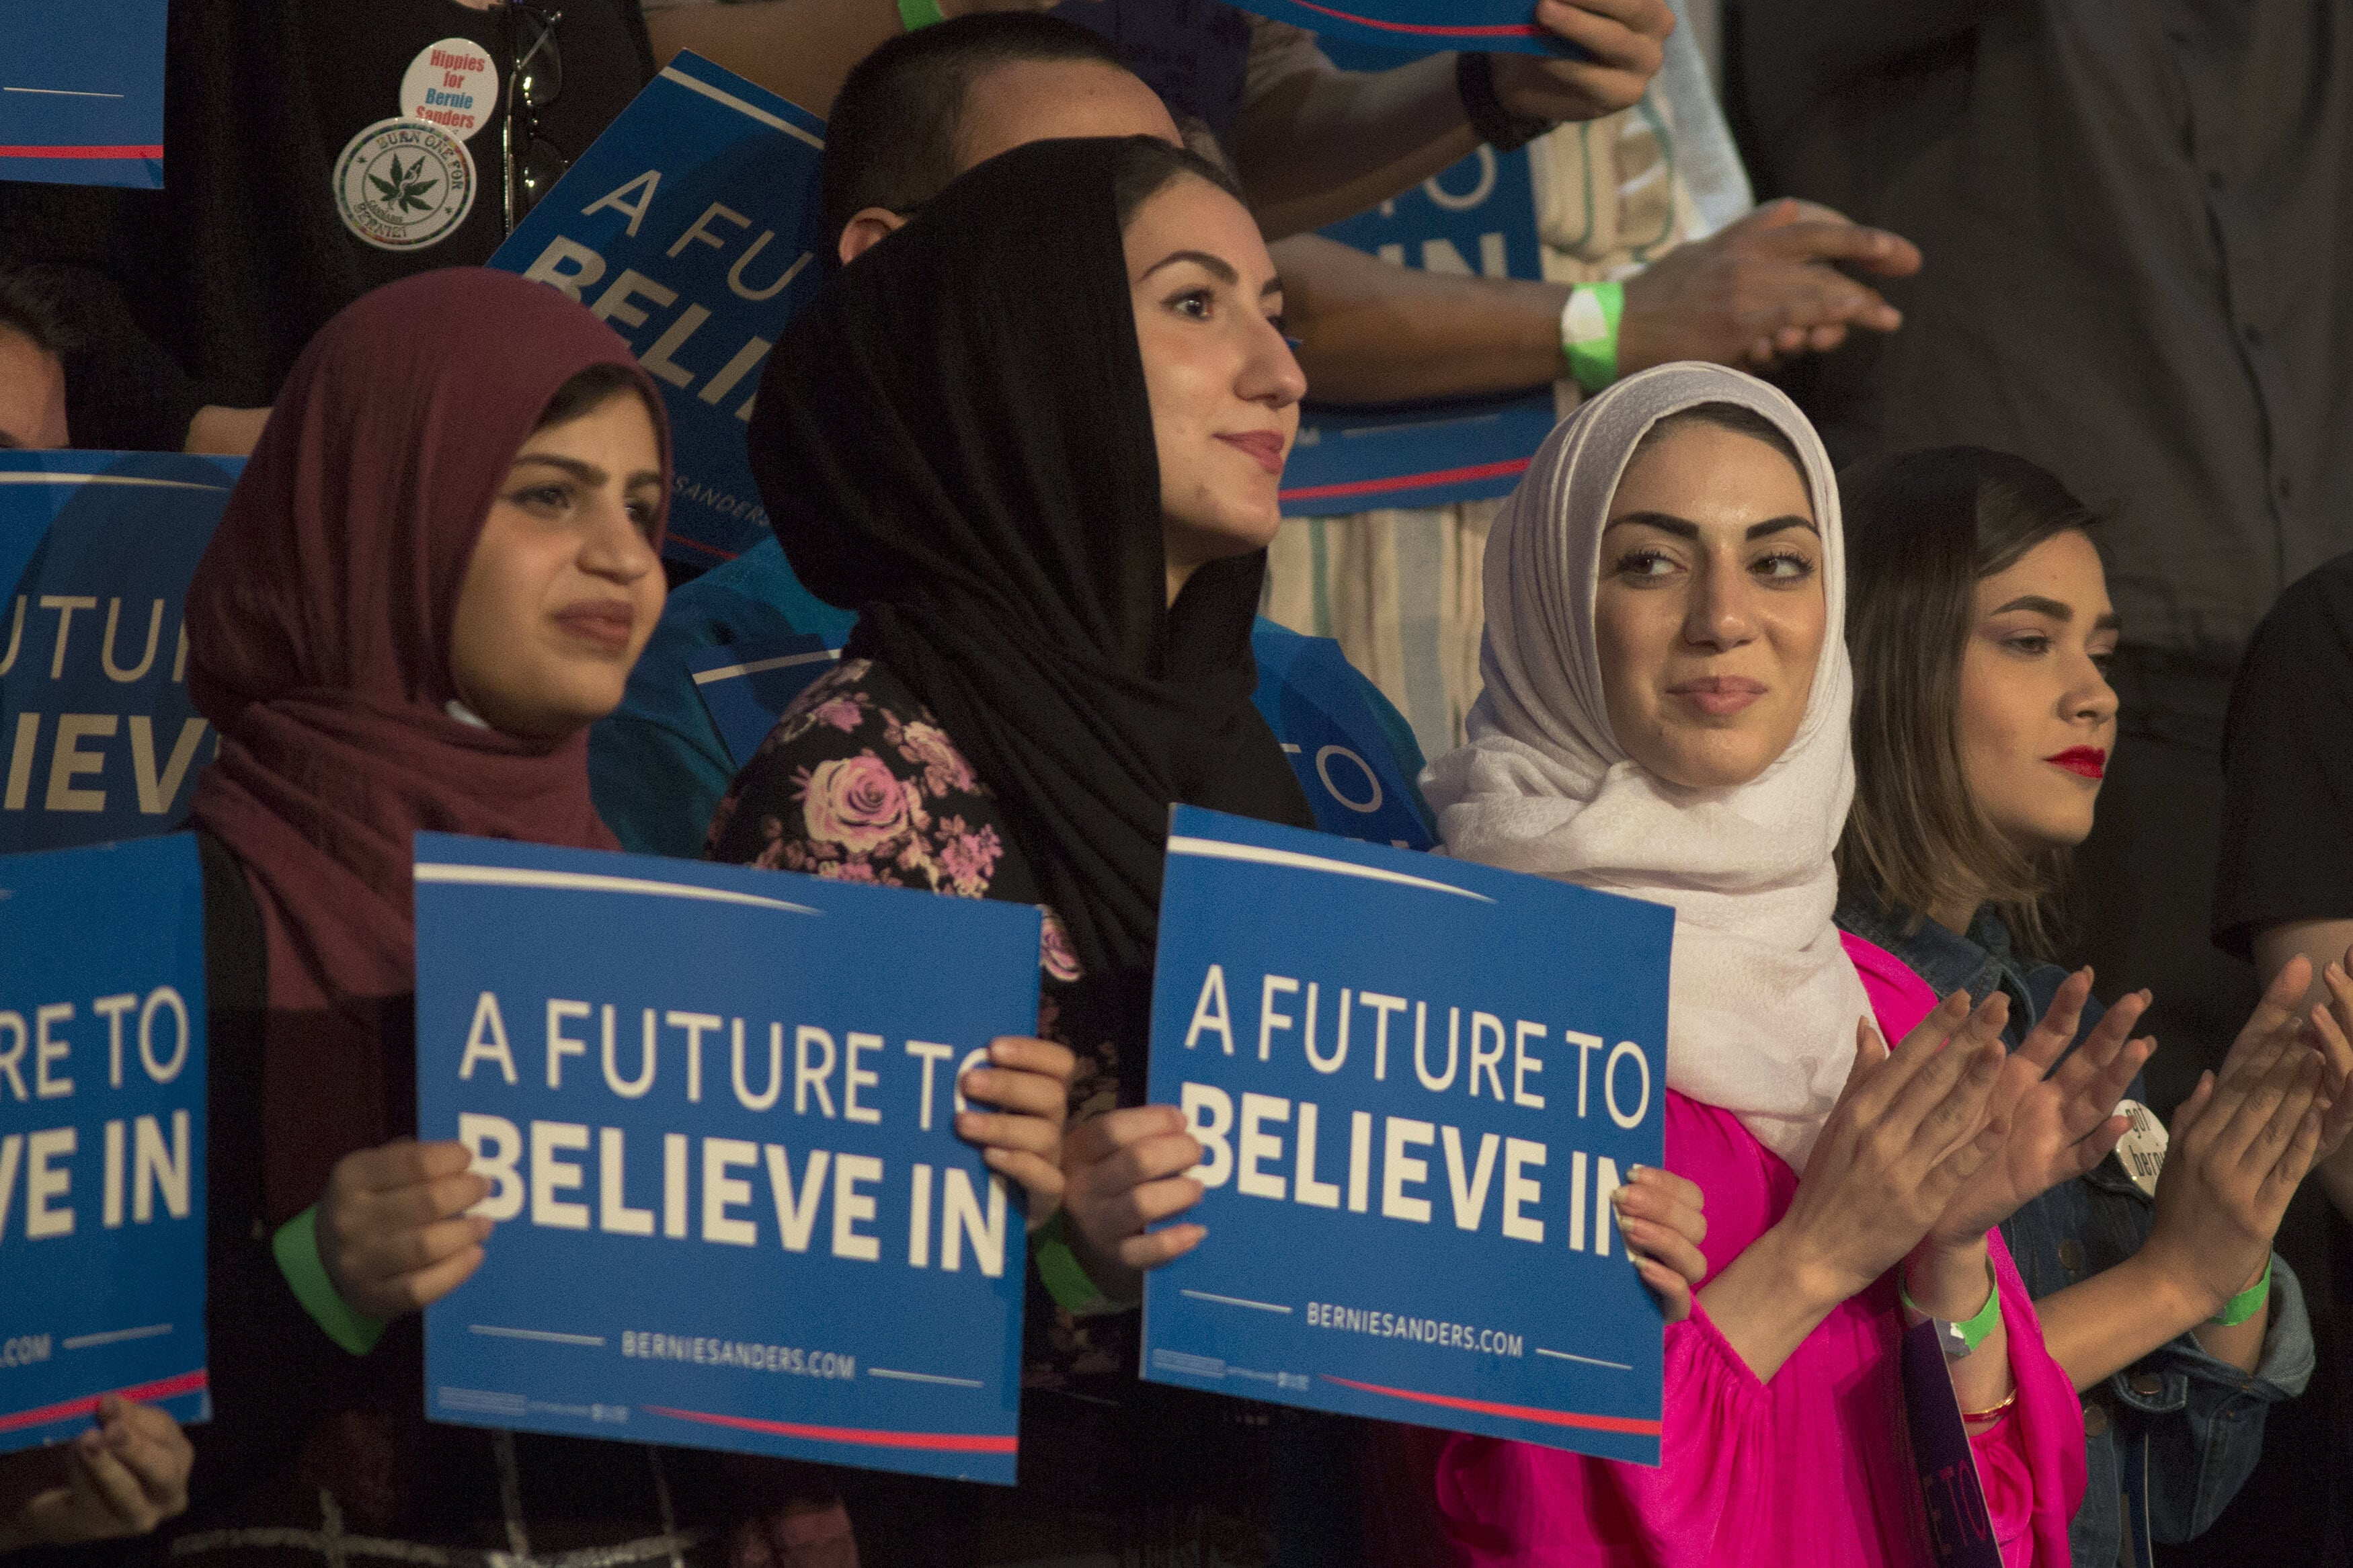 Muslim woman support Democratic presidential candidate Bernie Sanders at a campaign rally in California